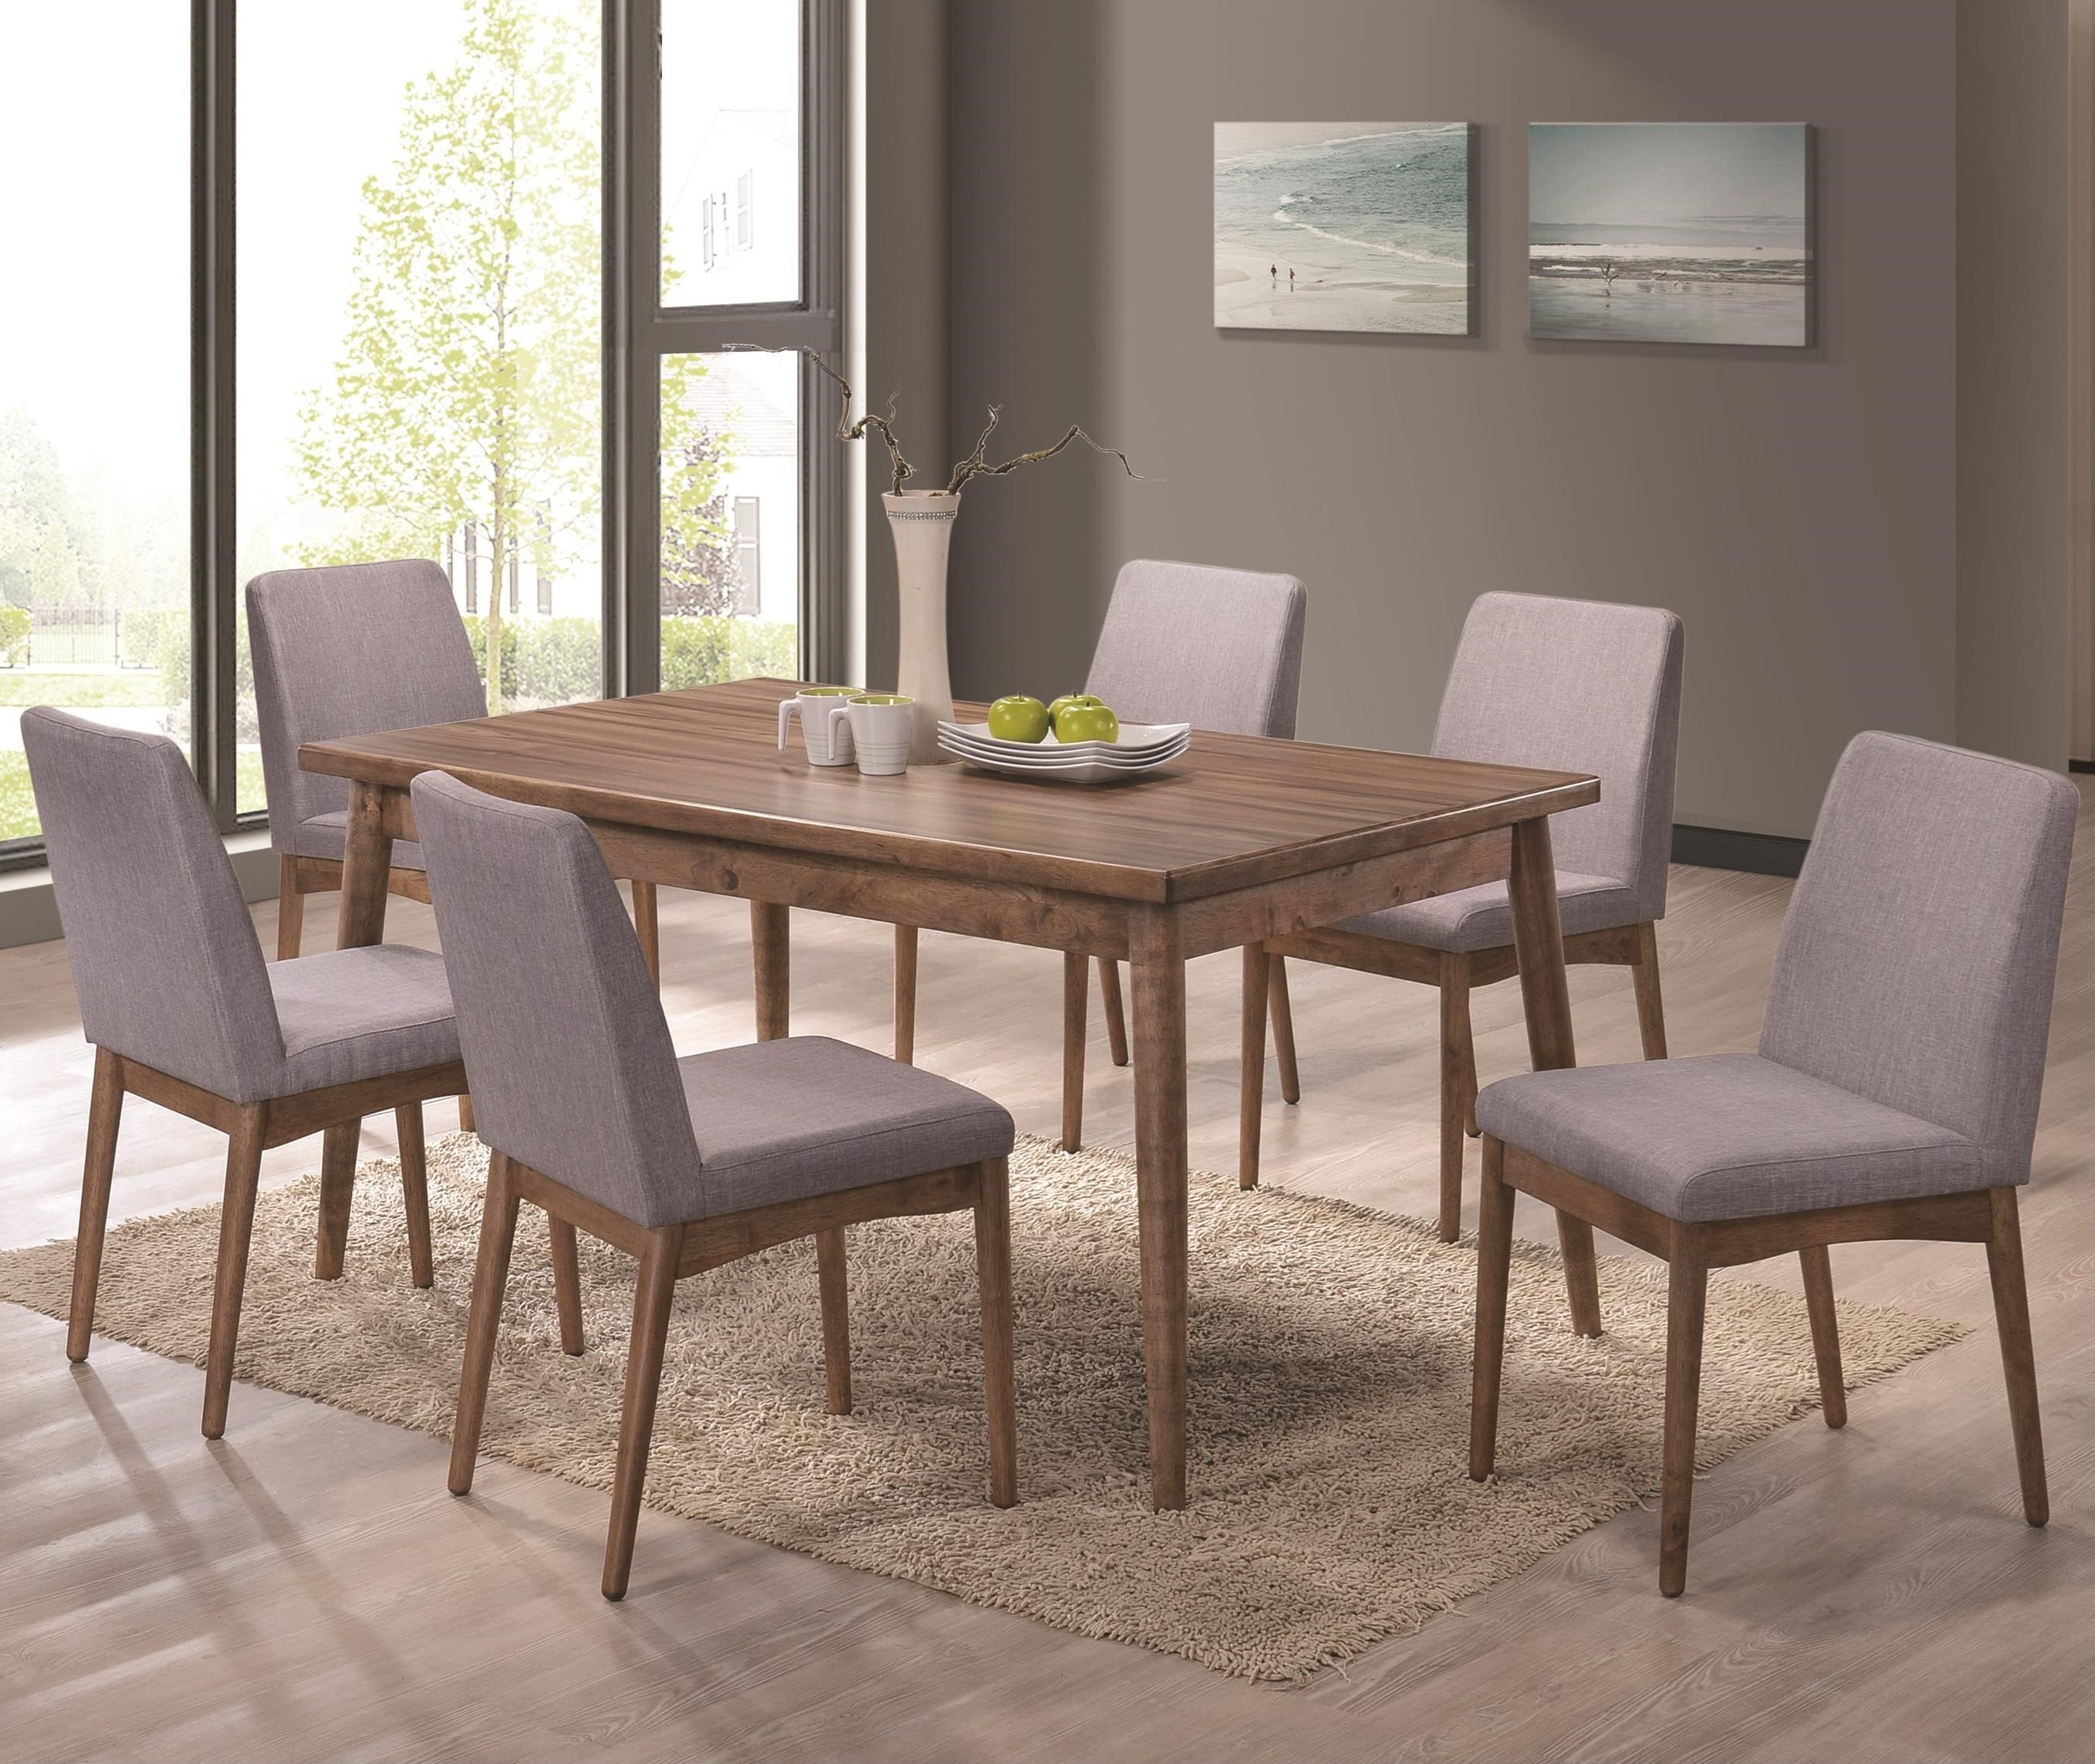 Dining Room Furniture Dallas Tx: Coaster Pasquil 7pc Dining Table Set Dallas TX